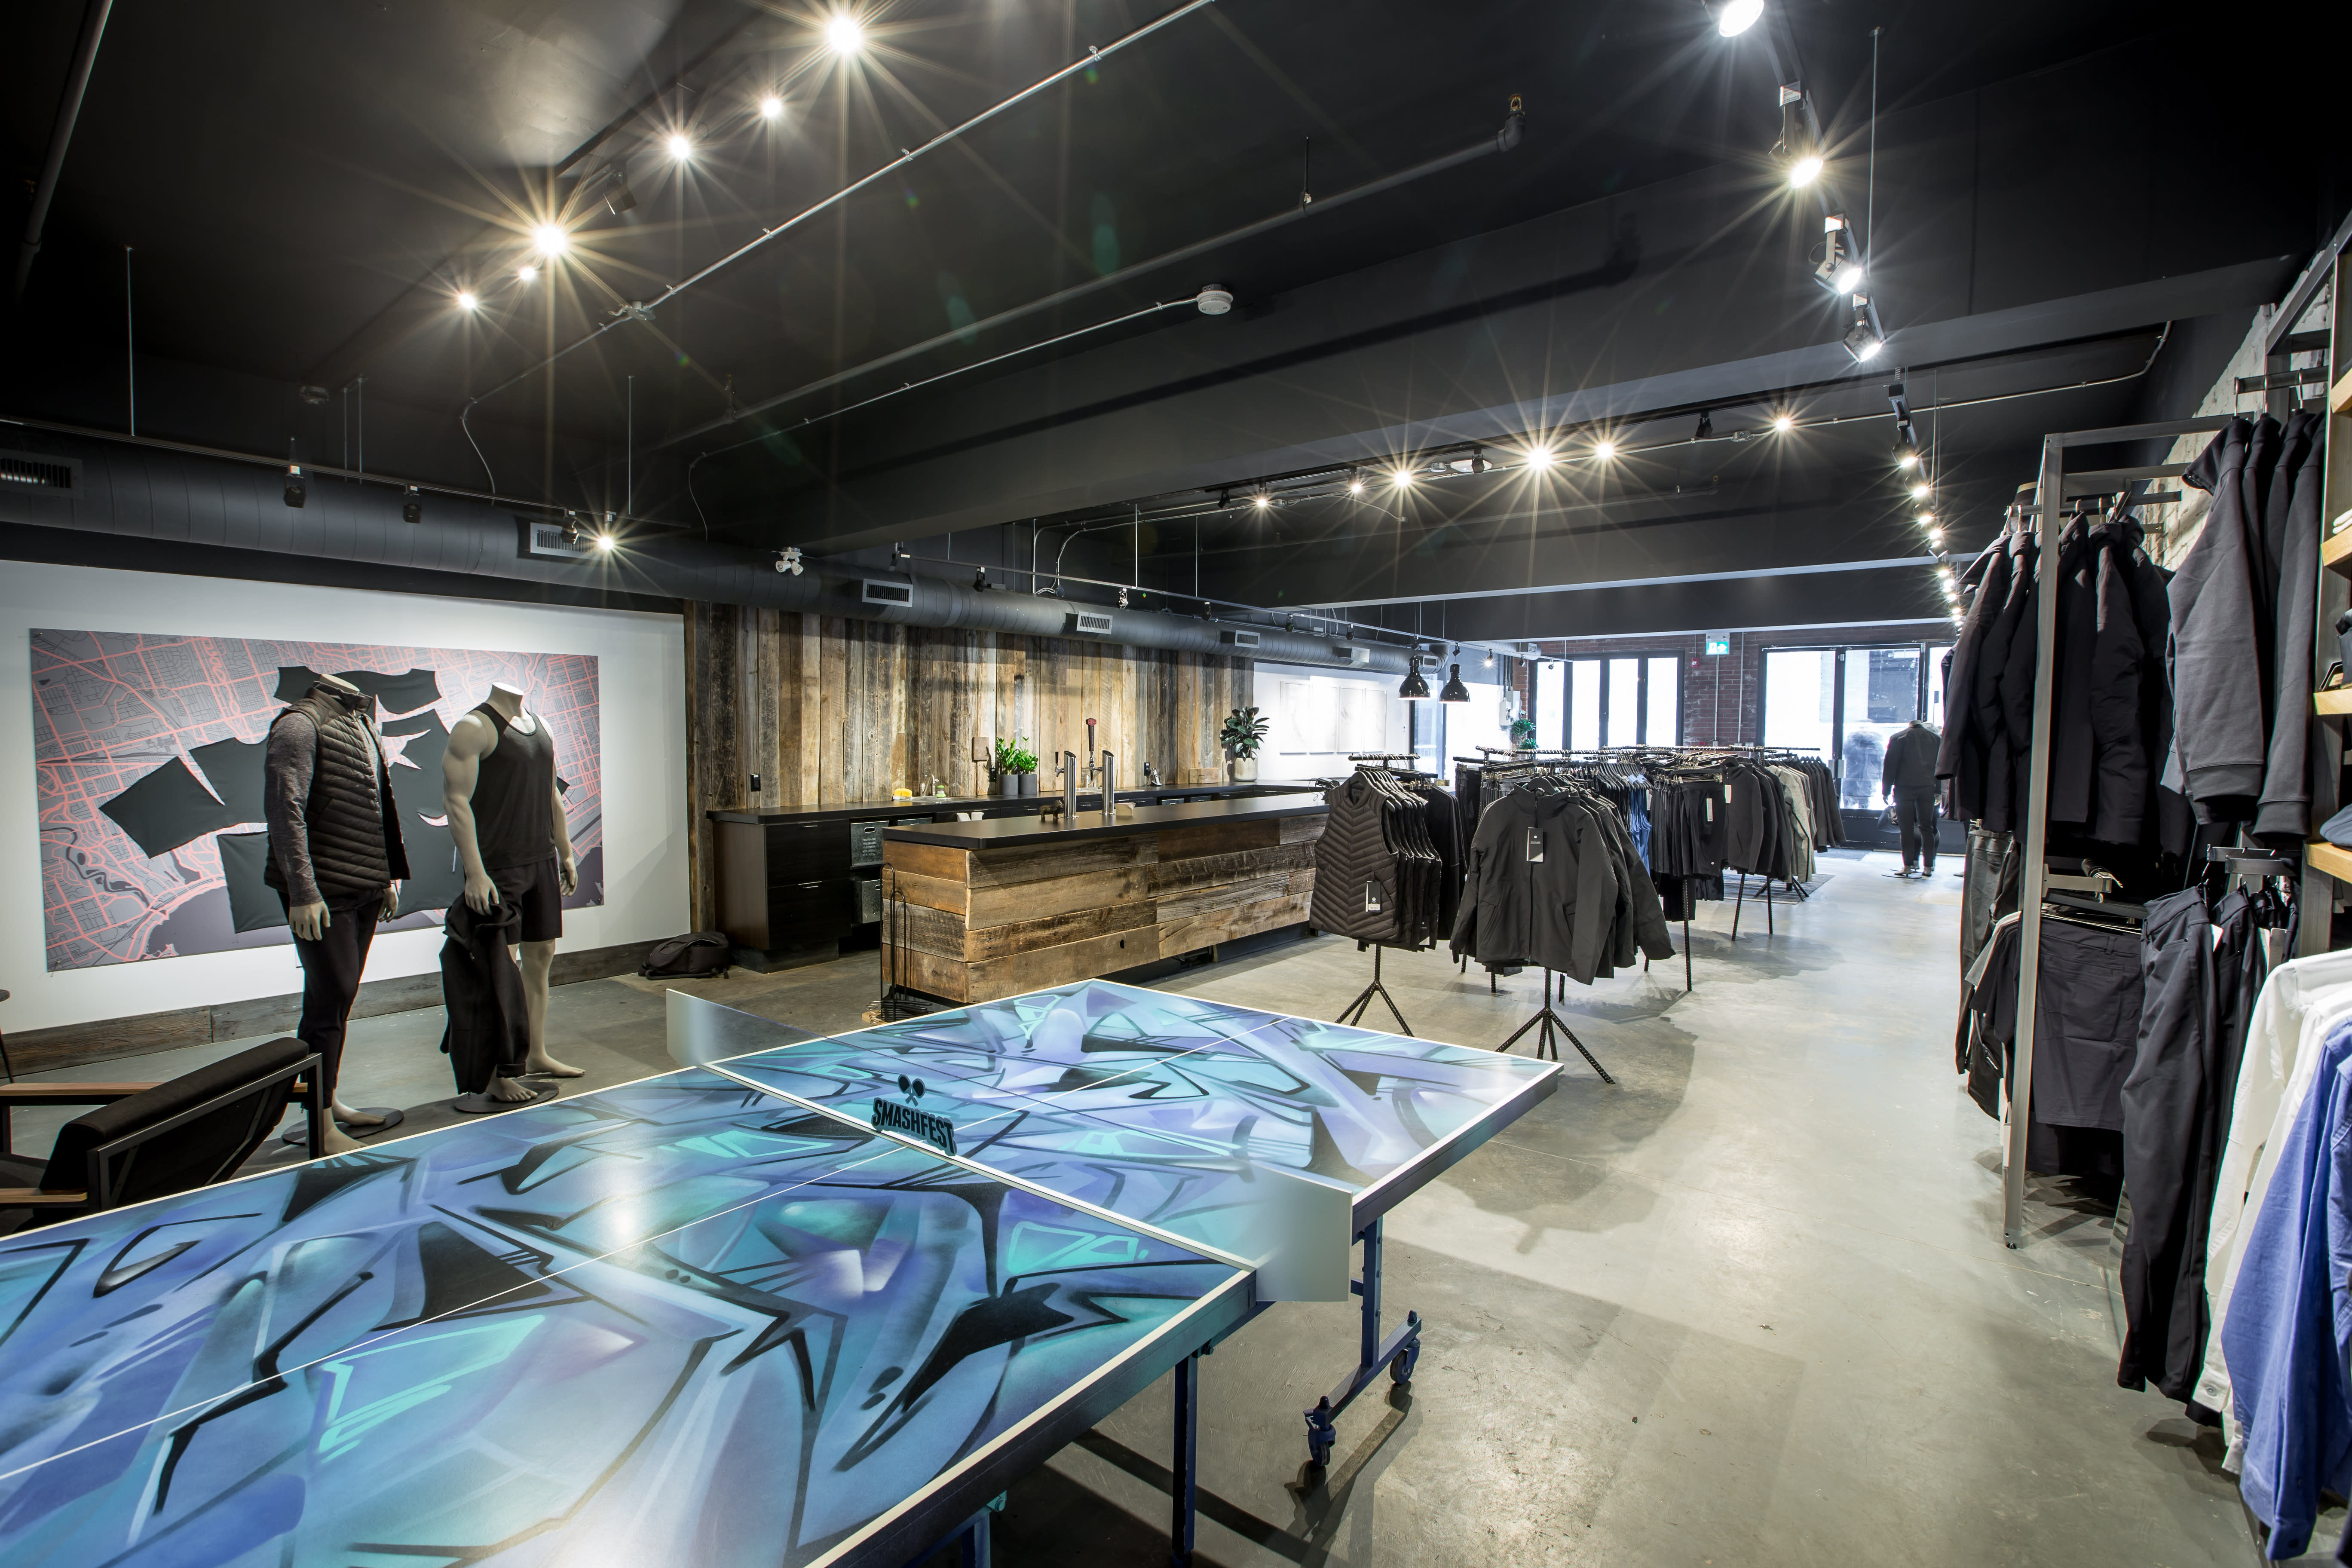 Lululemon Opens New Concept Store Called 'The Local' In Toronto